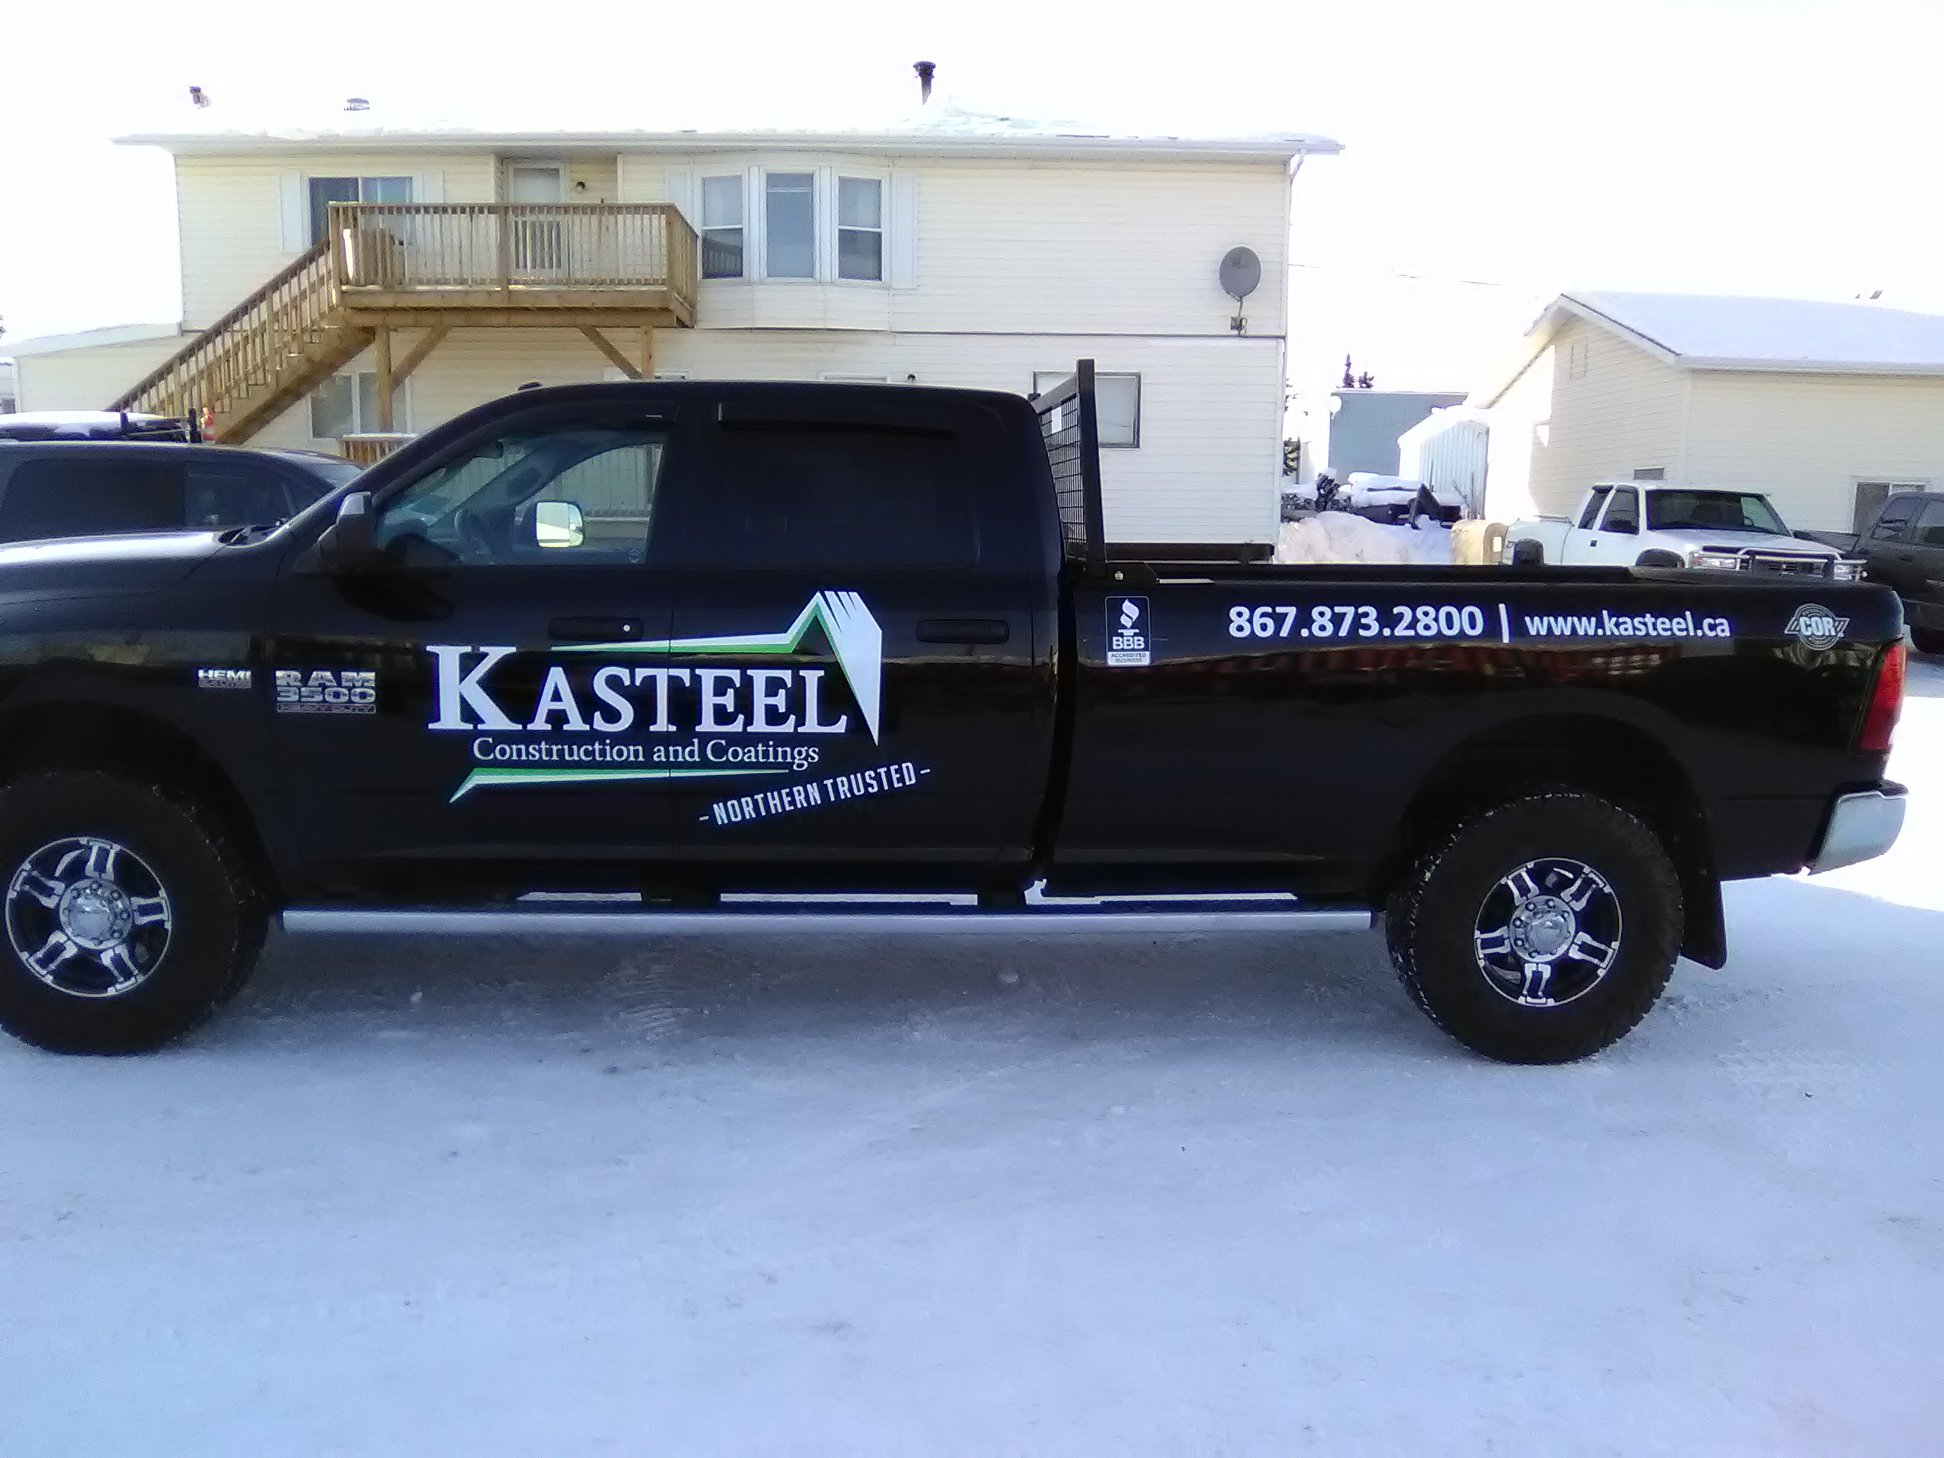 Kasteel Construction & Coating fleet decals.